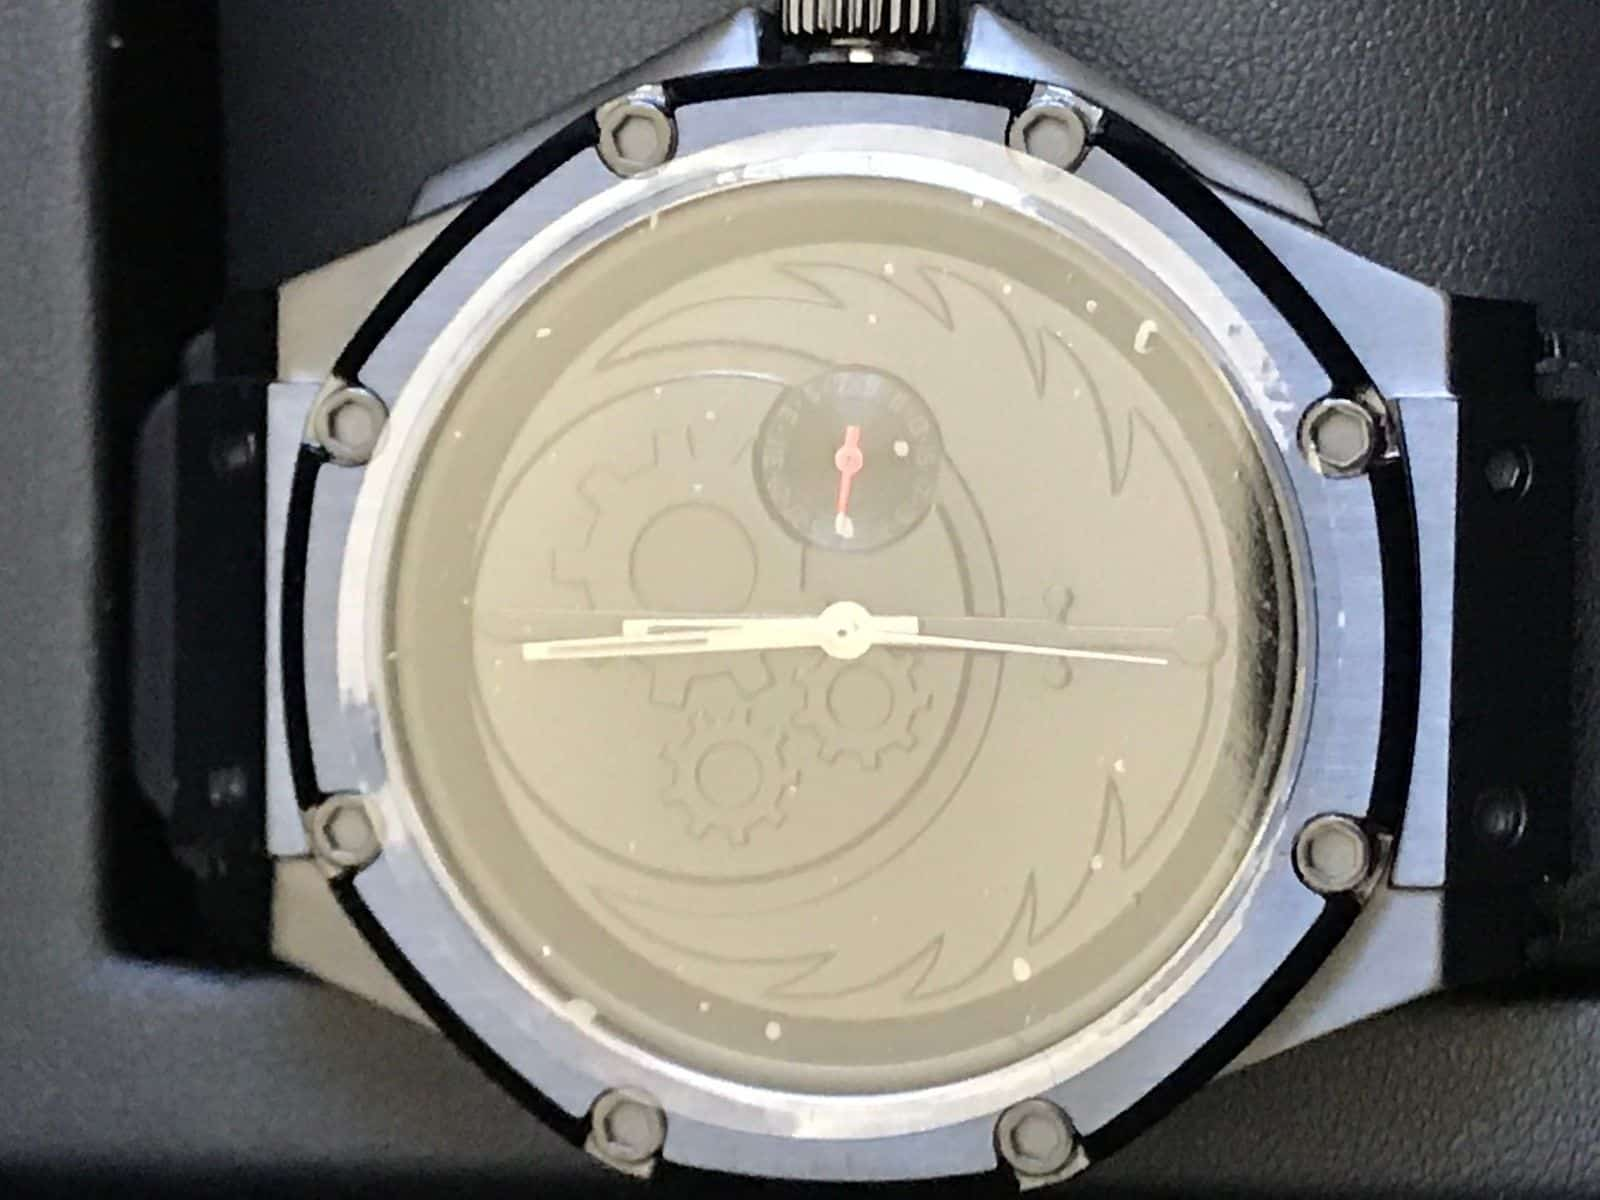 OFFICIAL Fallout BROTHERHOOD OF STEEL WATCH LIMITED 500 RARE Bethesda Softworks MSTR Meister 3